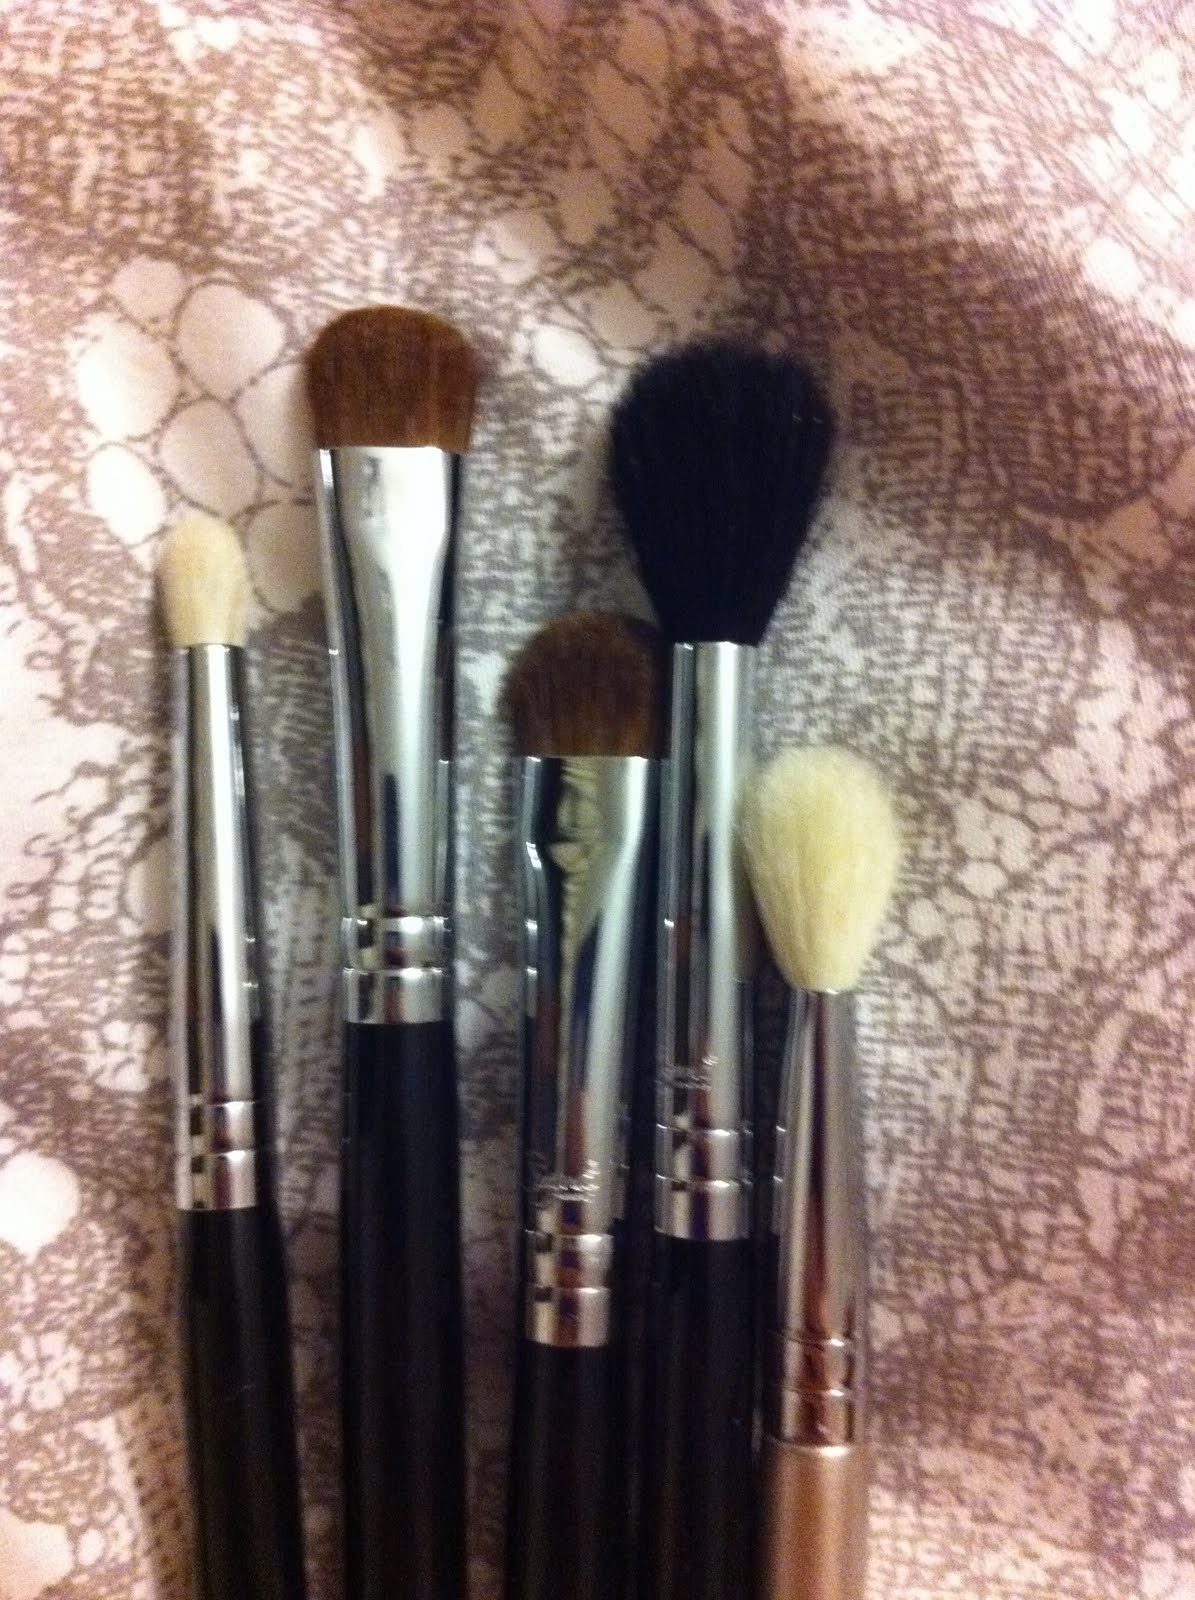 Posietinted: Sigma brushes compared to MAC